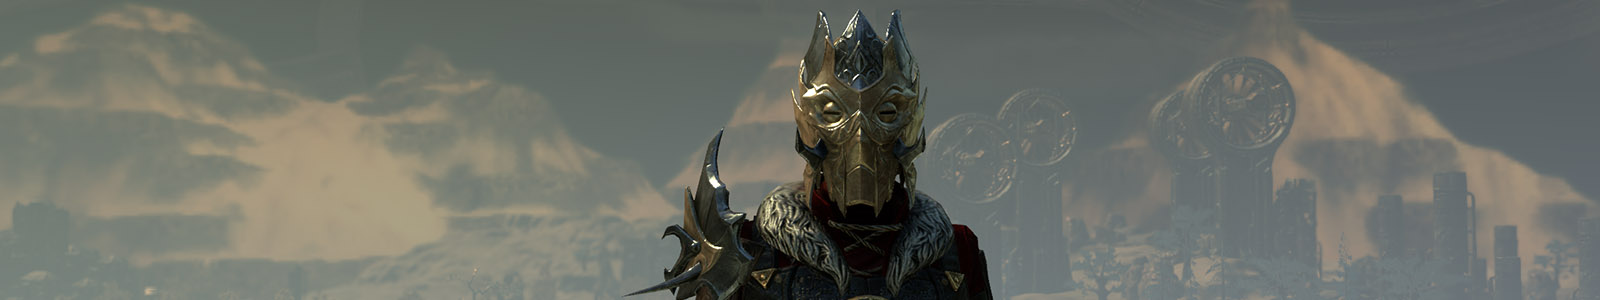 Zaan Monster Set Armor Set header